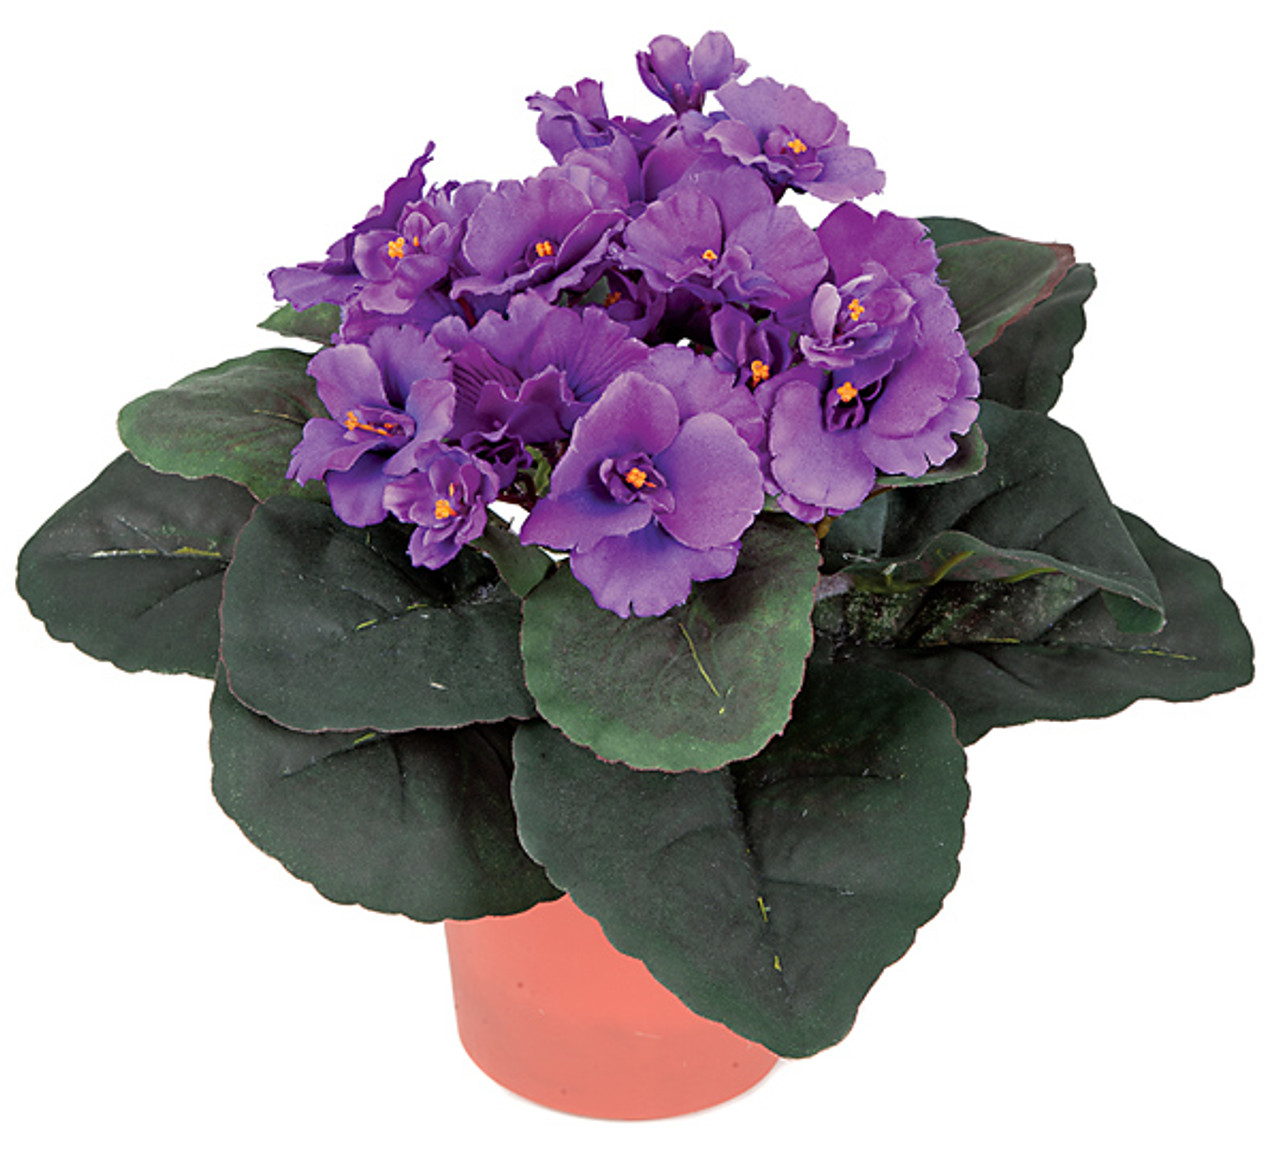 10 Inch Potted African Violet Plant Autograph Foliages